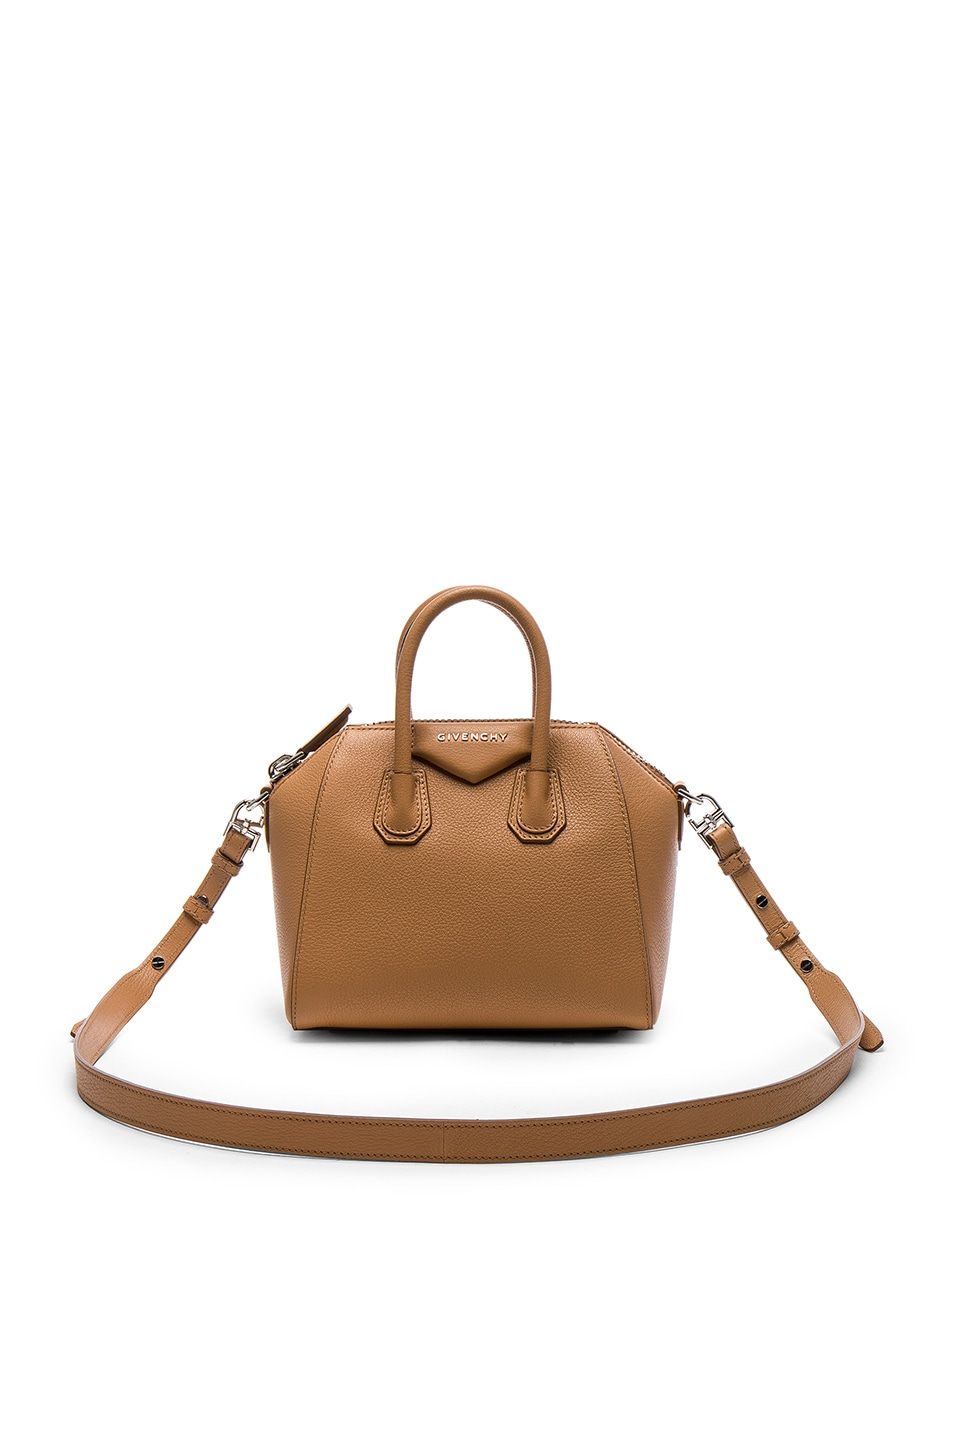 Image 1 of Givenchy Mini Sugar Antigona in Medium Beige